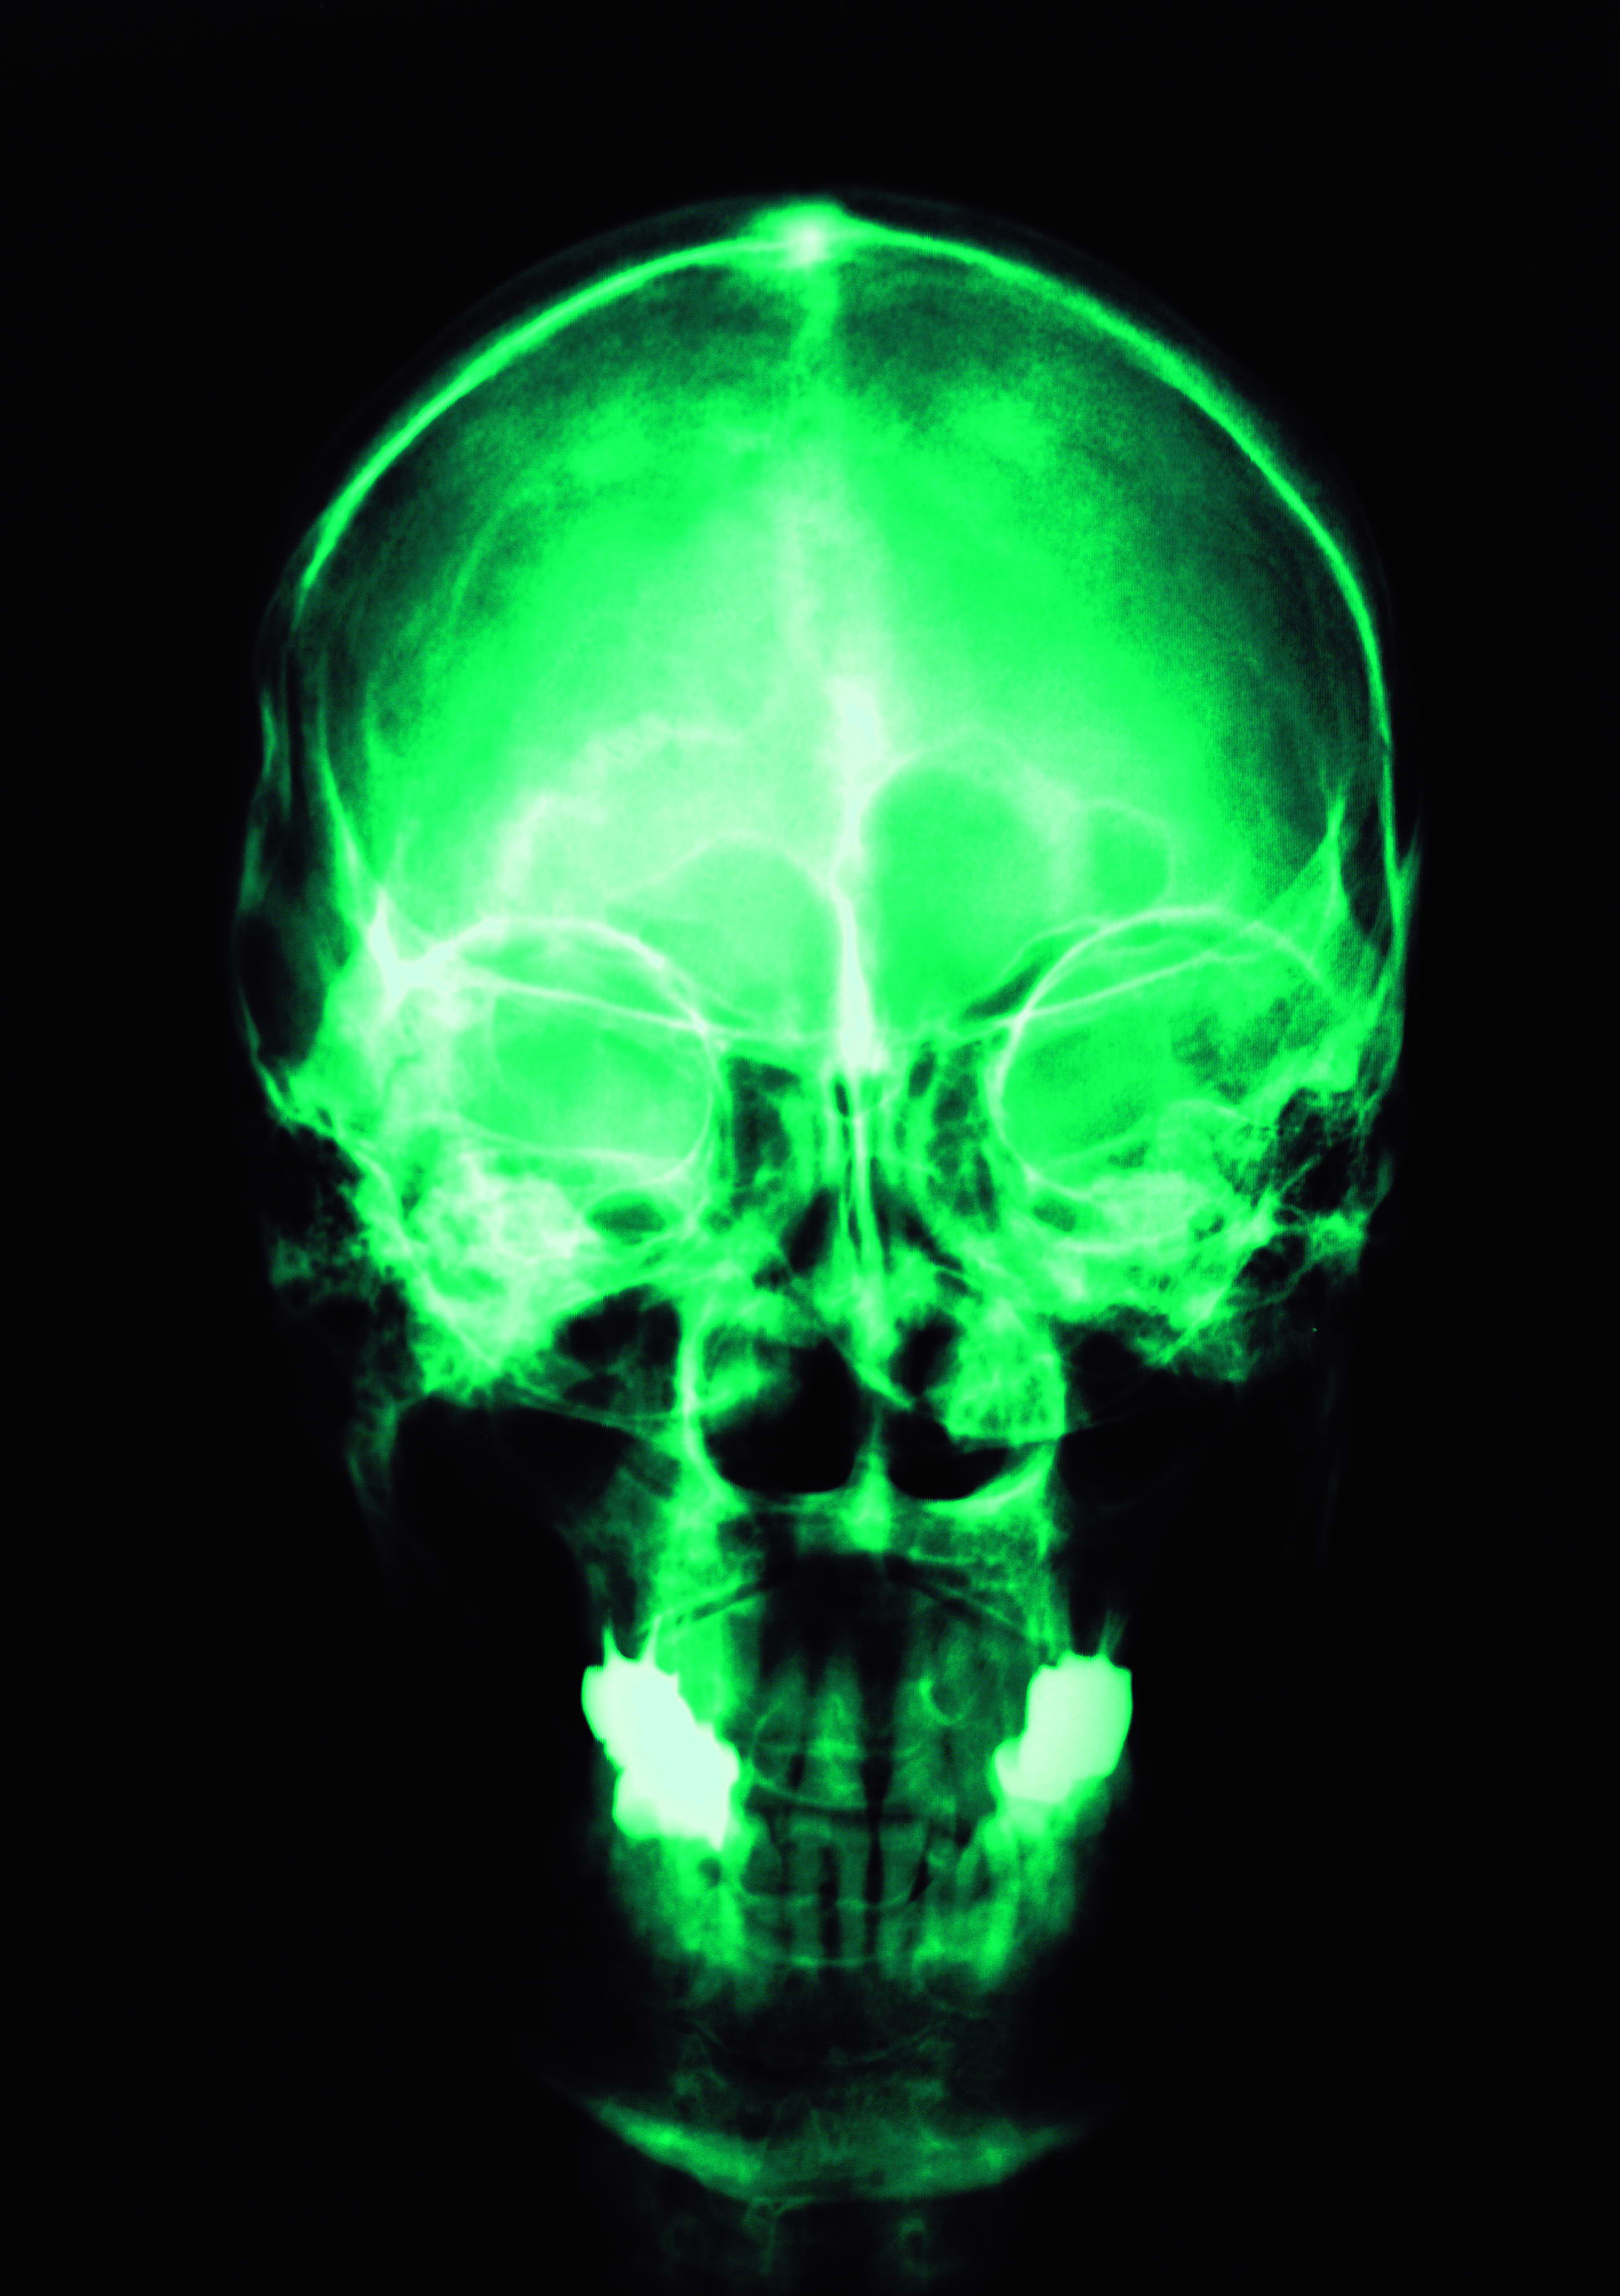 skull x-rays, texture, background, download photo, head skull x-ray texture background